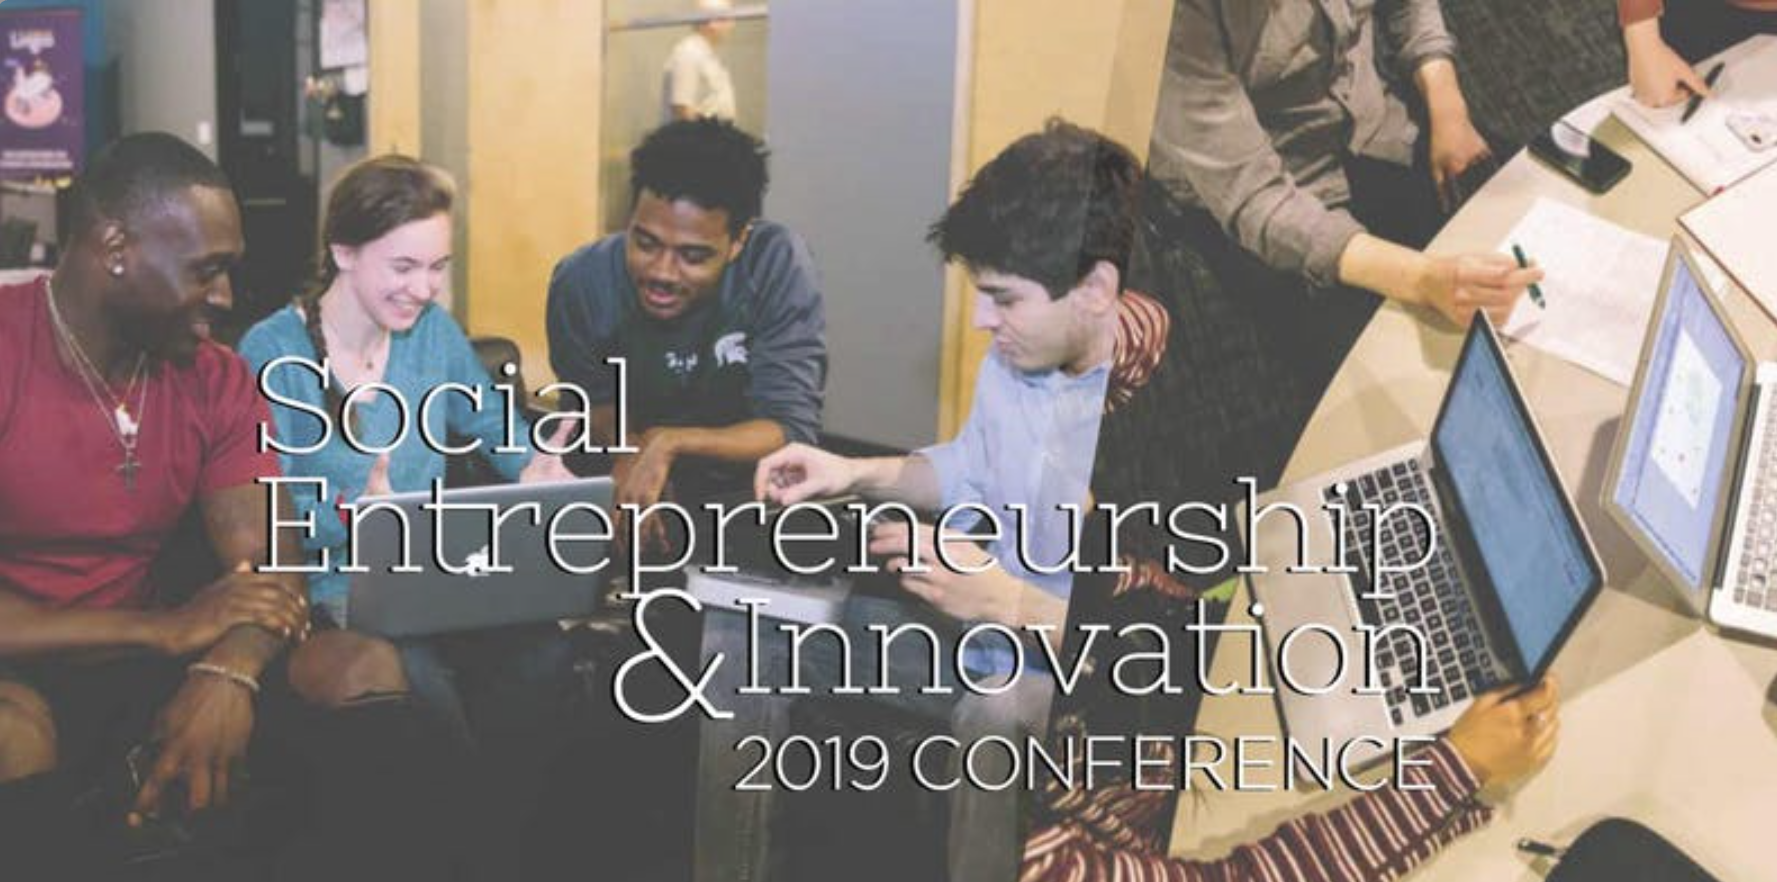 Social Entrepreneurship & Innovation 2019 Conference @ Breslin Student Events Center, Meeting Rooms C&D